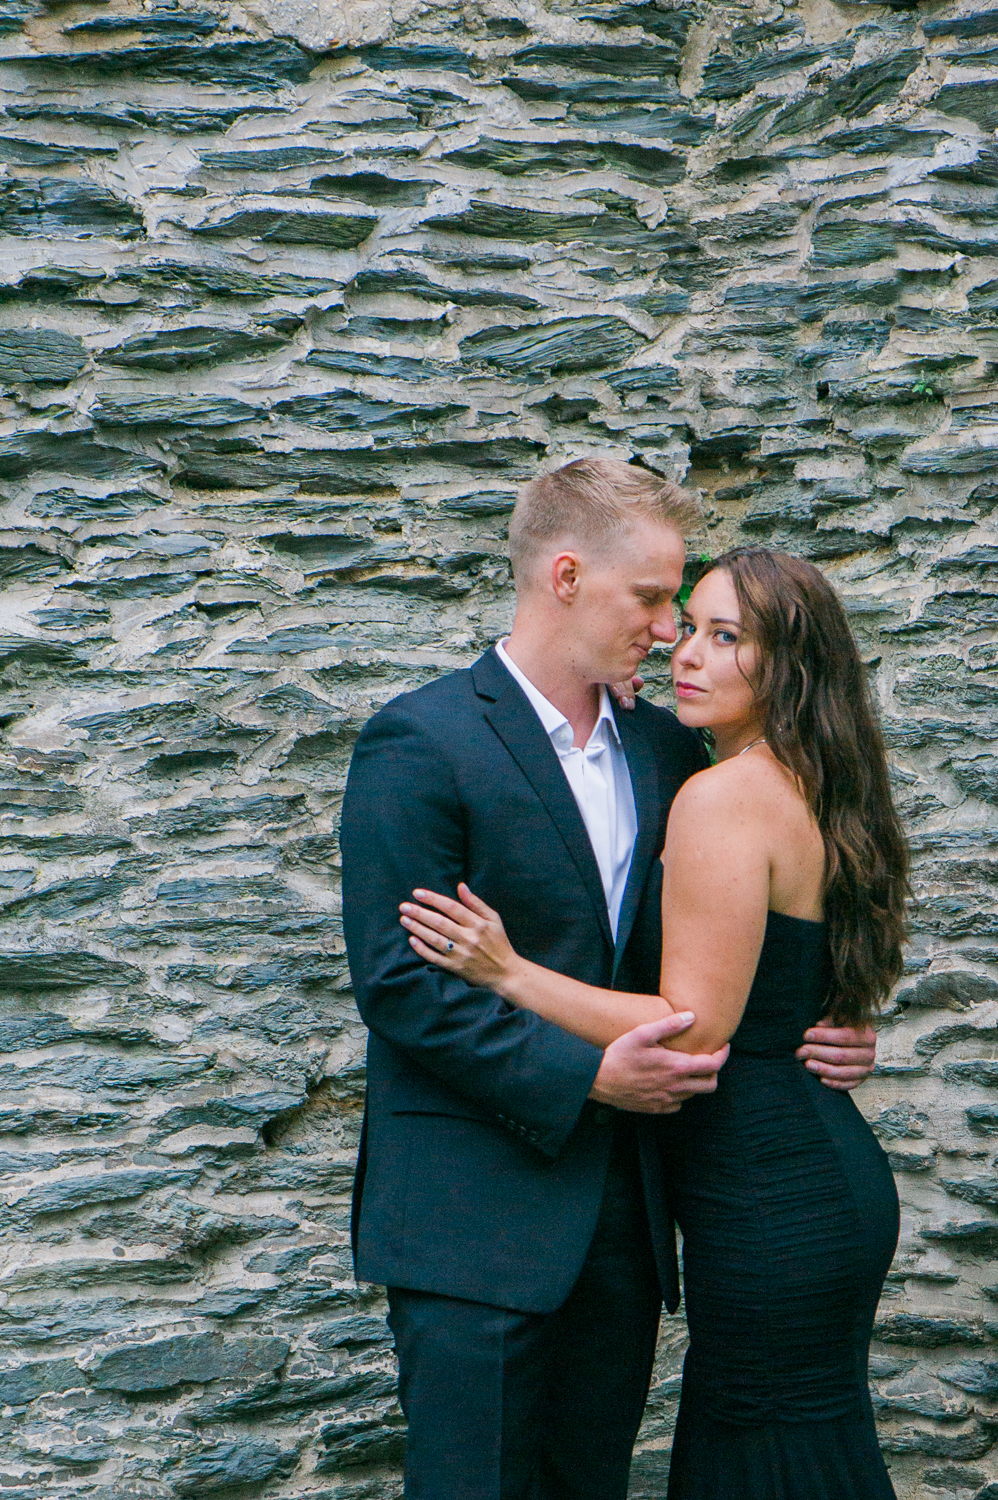 callie-and-chris-harpers-ferry-church-ruins-engagement-1.jpg